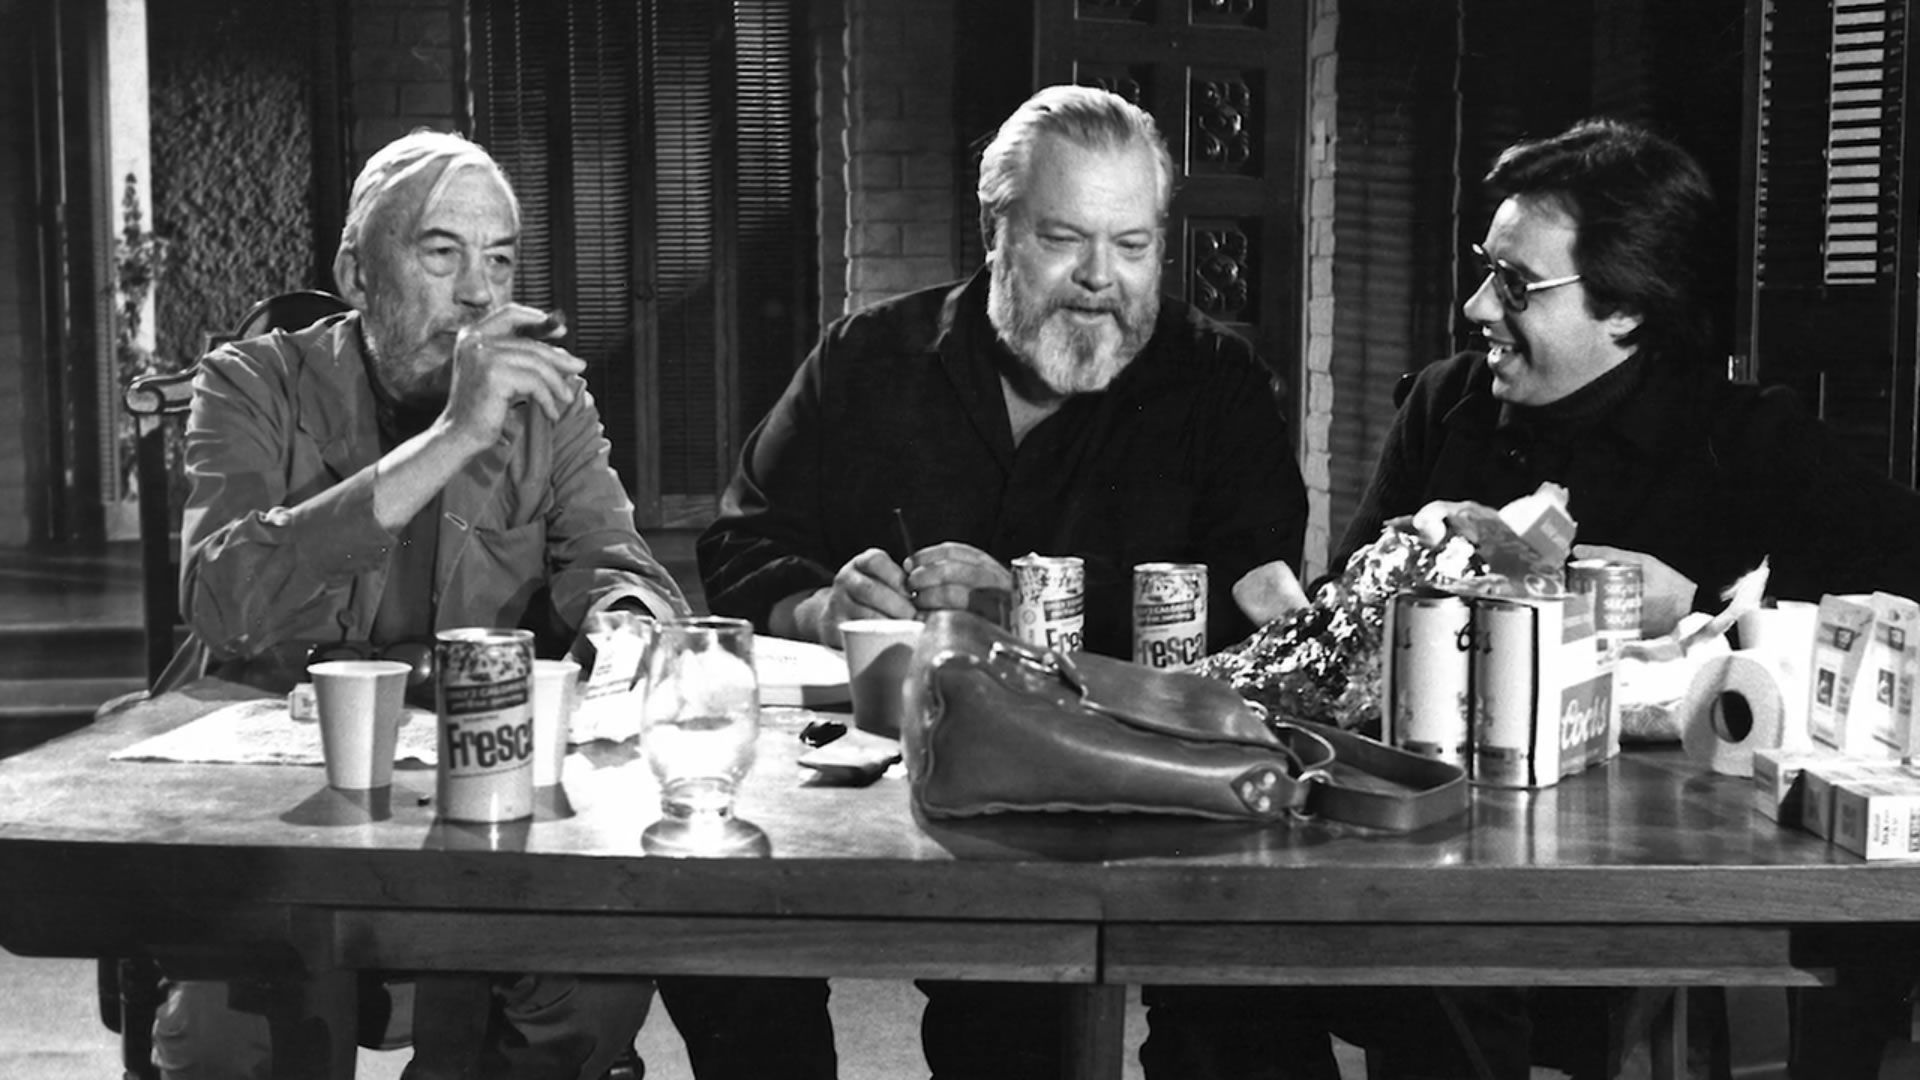 Orson Welles' final film to be completed and released by Netflix